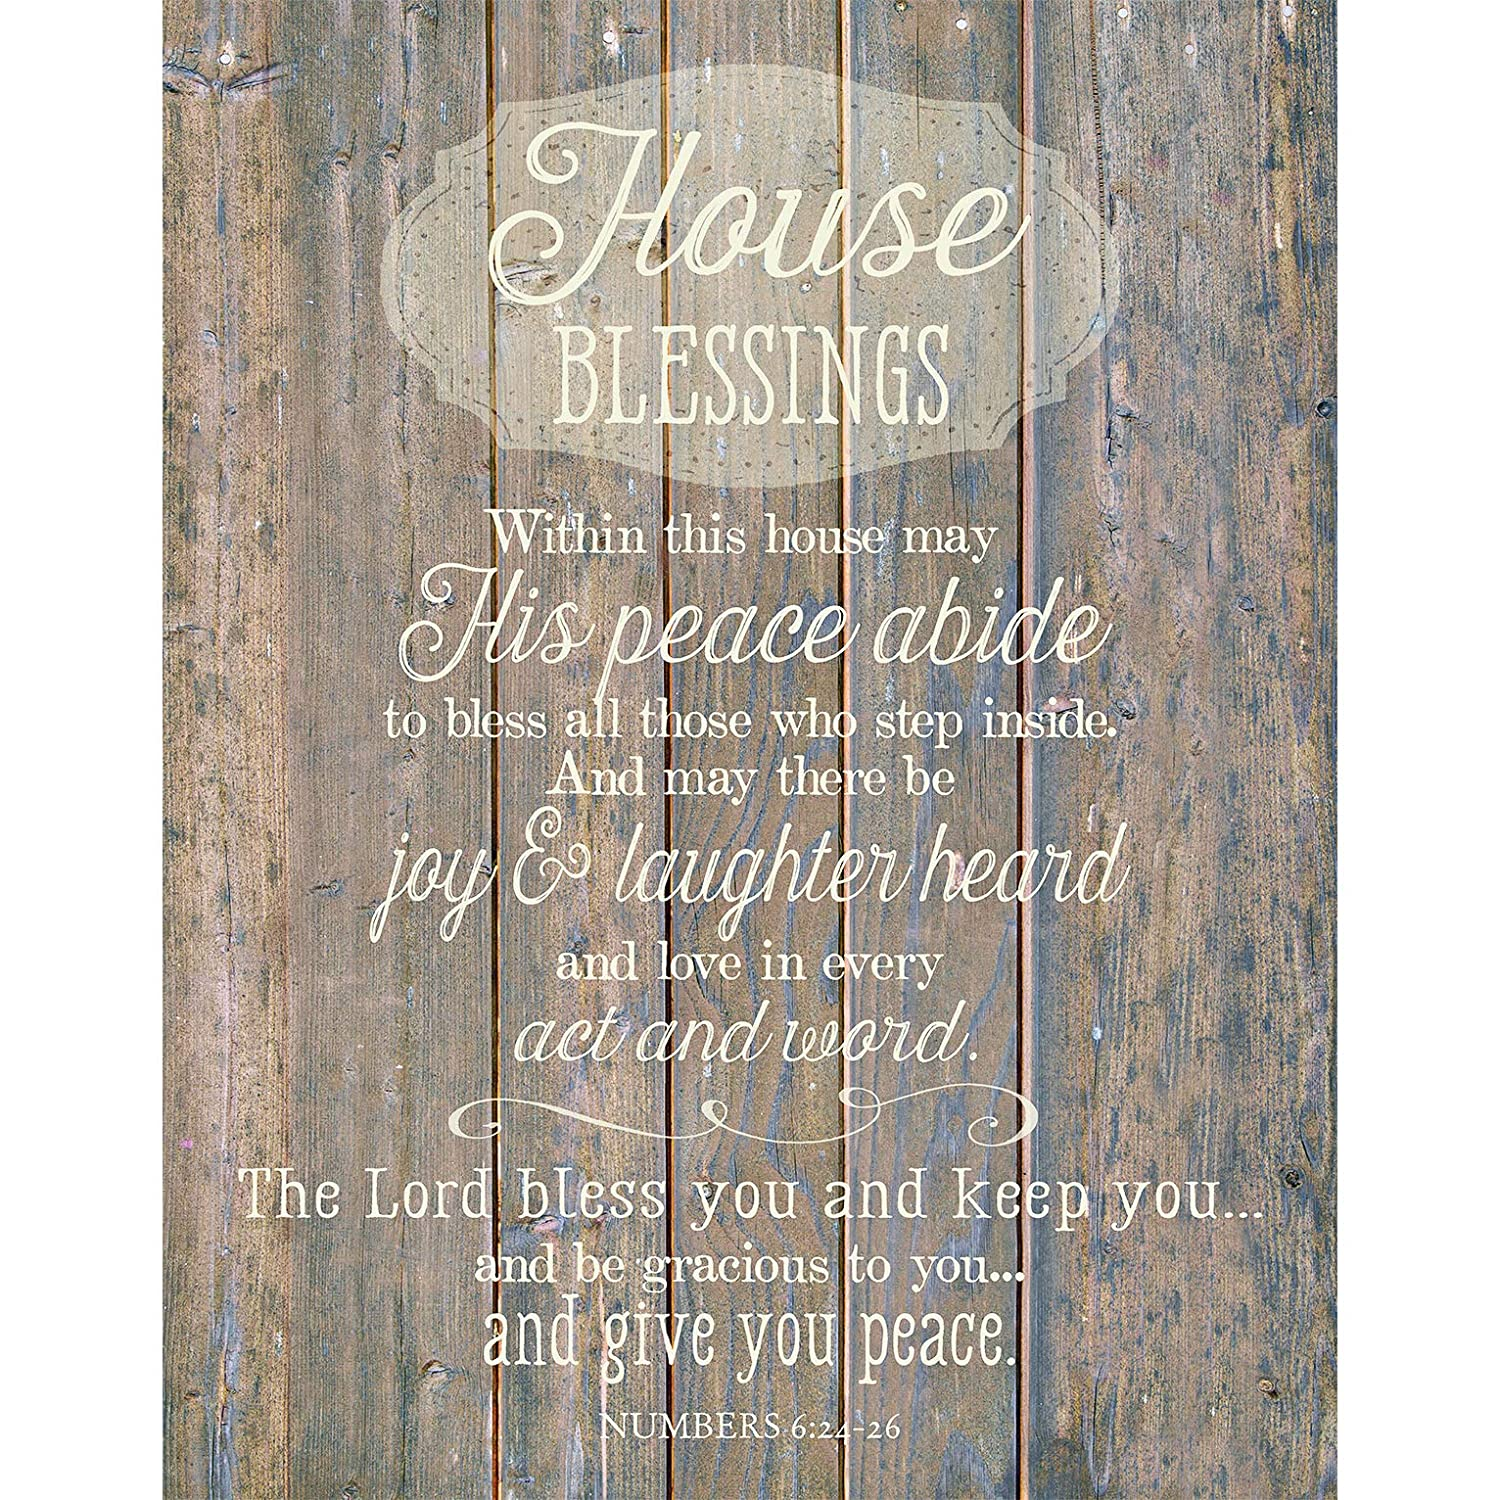 "House Blessing Wood Plaque Inspiring Quote 11.75""x15"" - Classy Vertical Frame Wall Hanging Decoration 